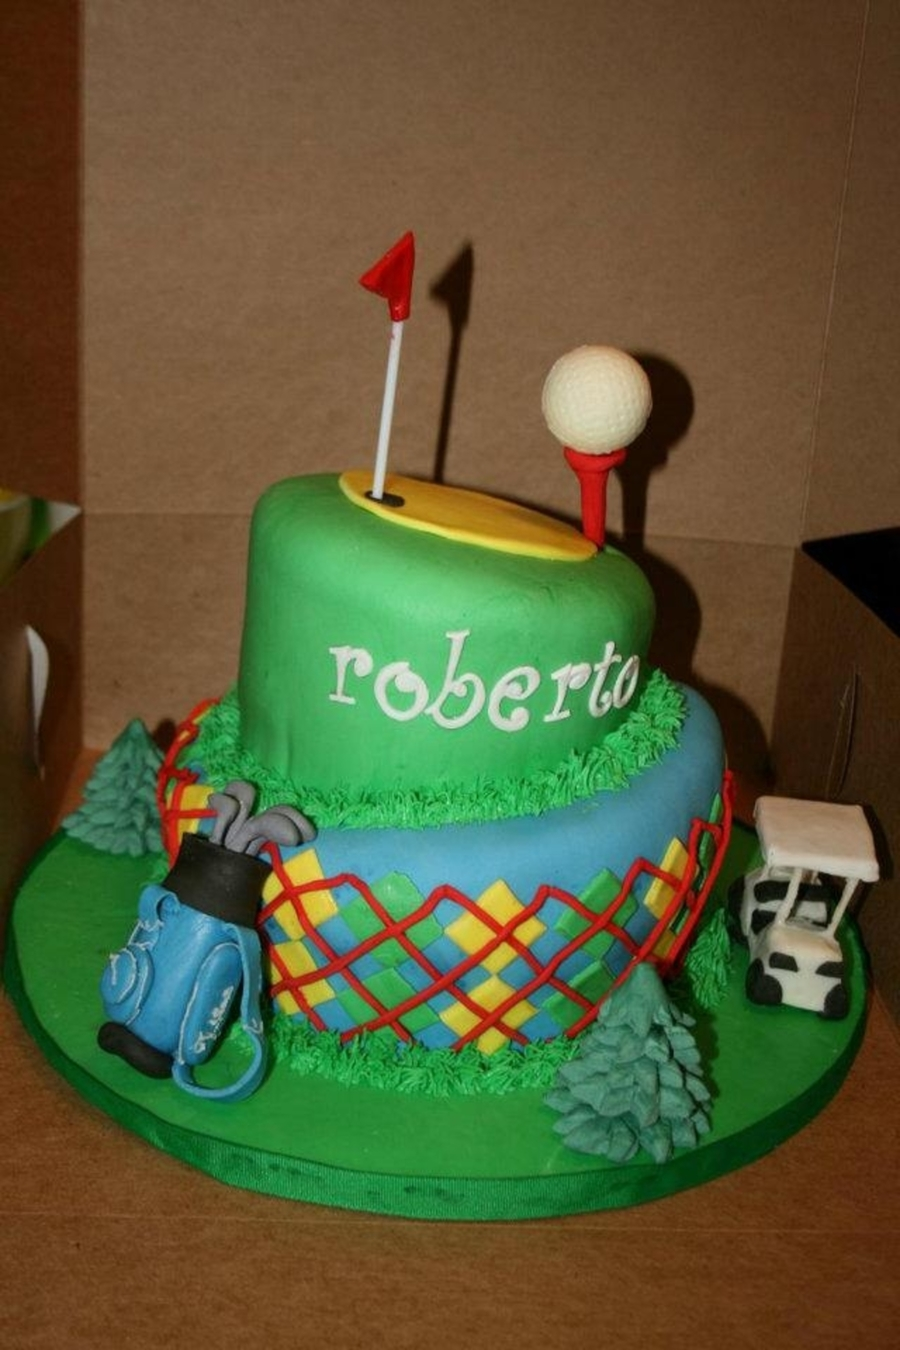 Topsy Turvy Golf on Cake Central